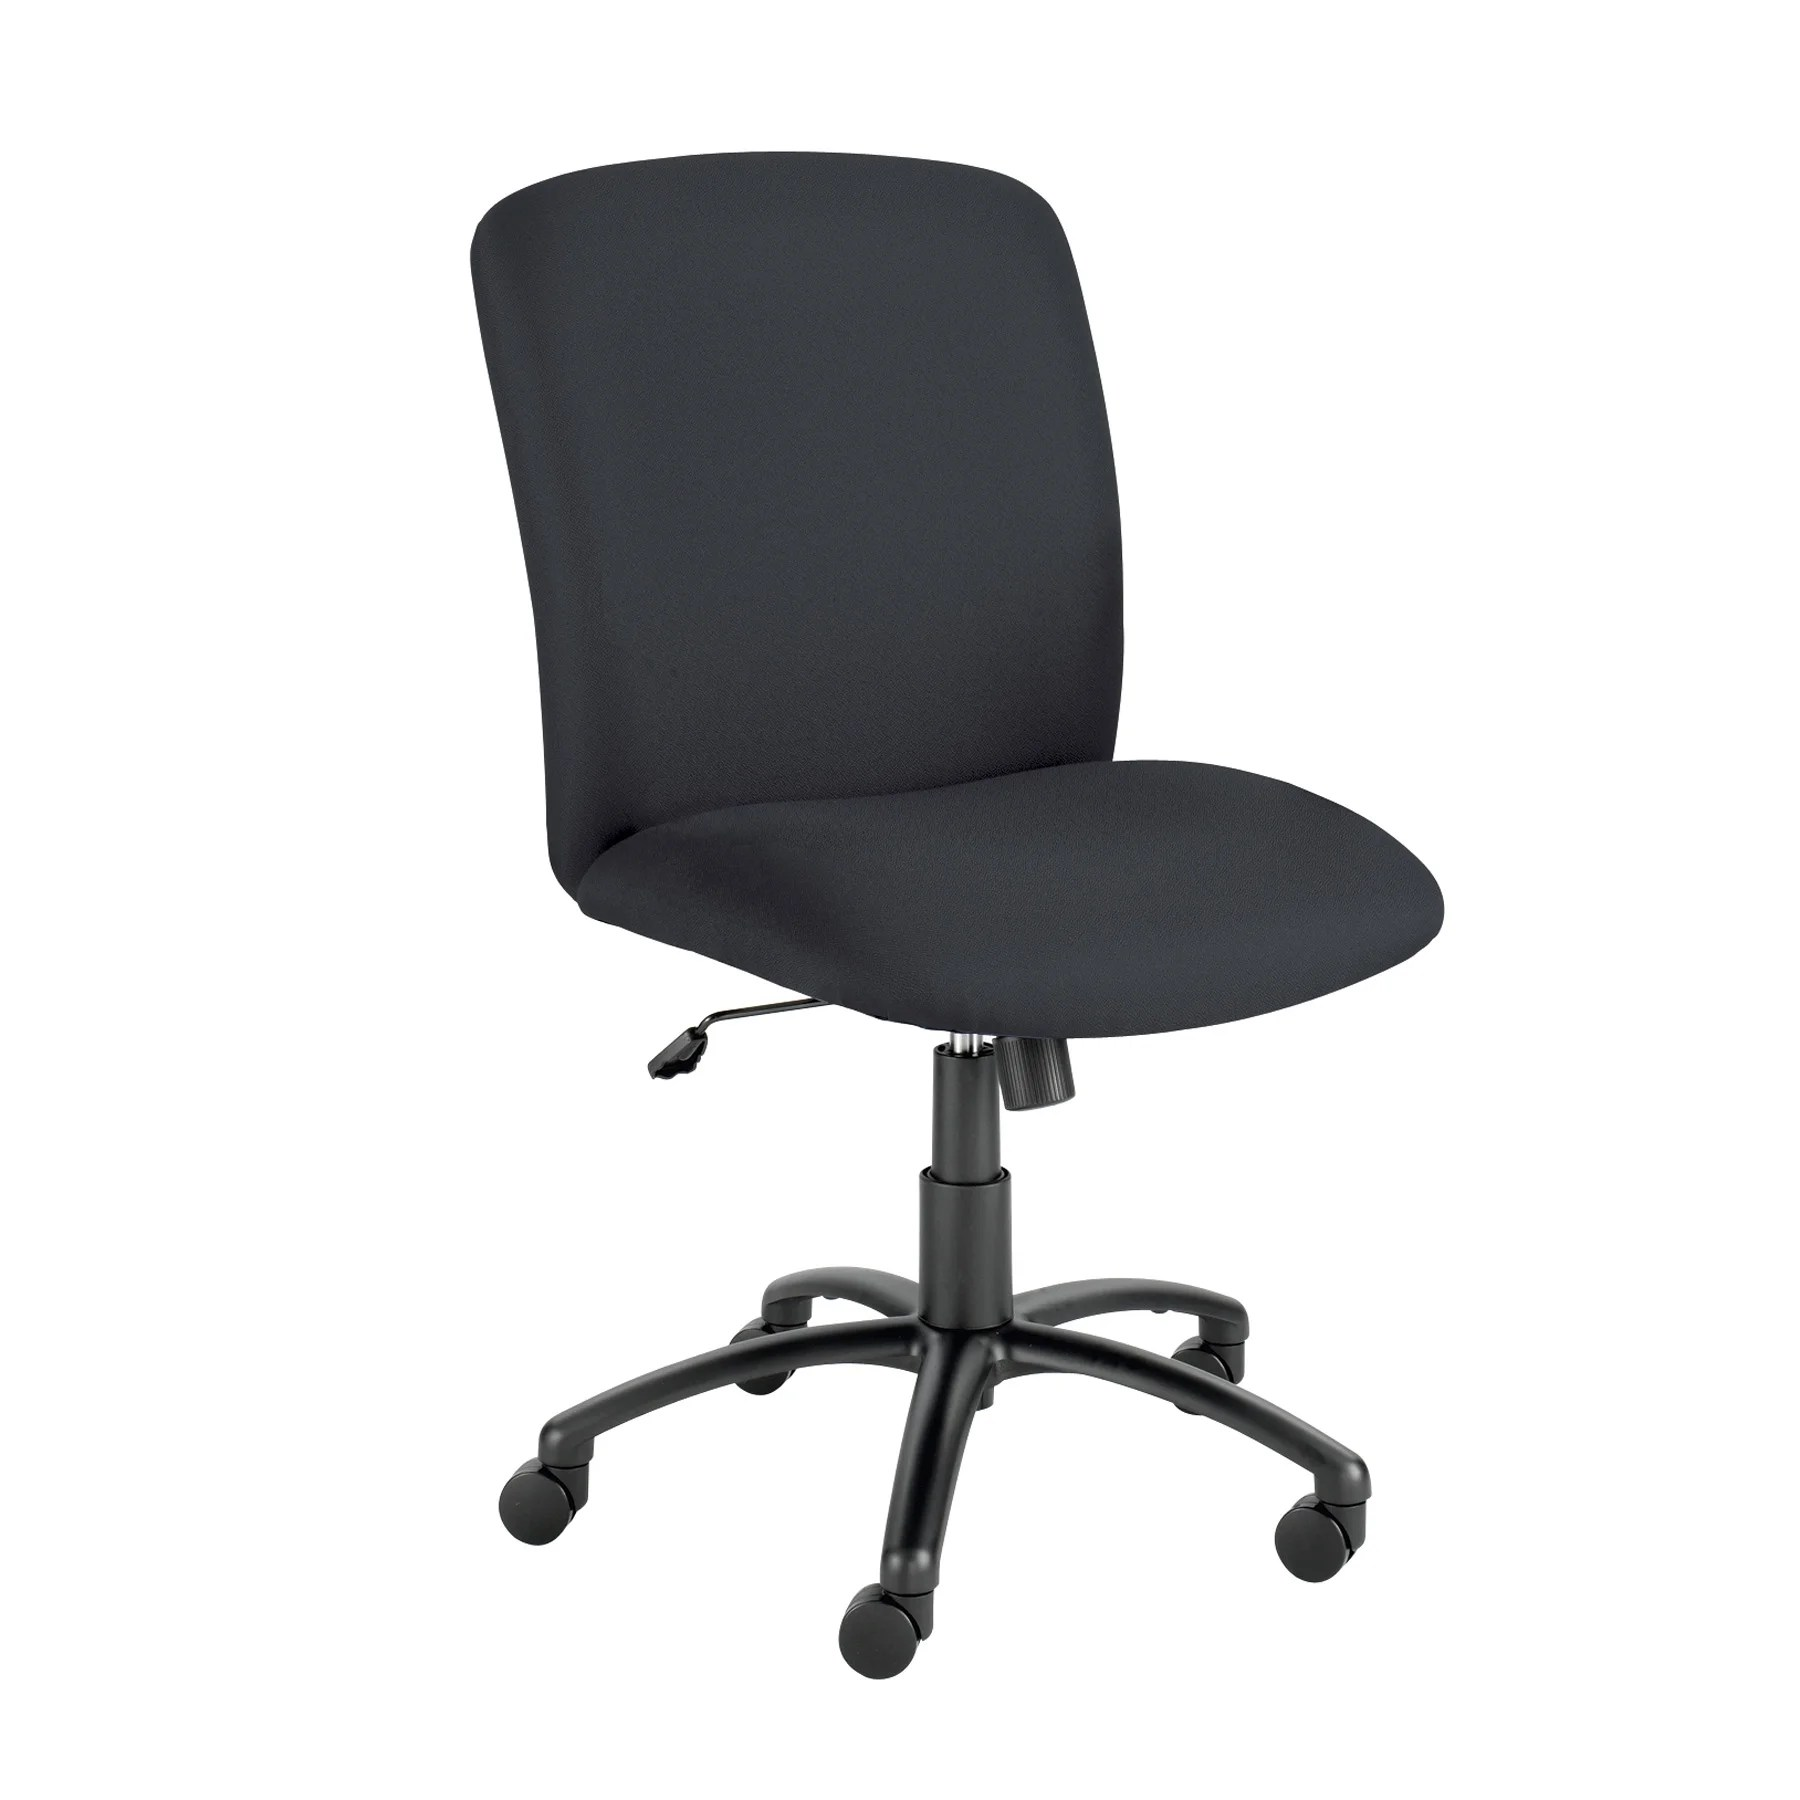 tall swivel chair john vogel west elm safco products high back big and office